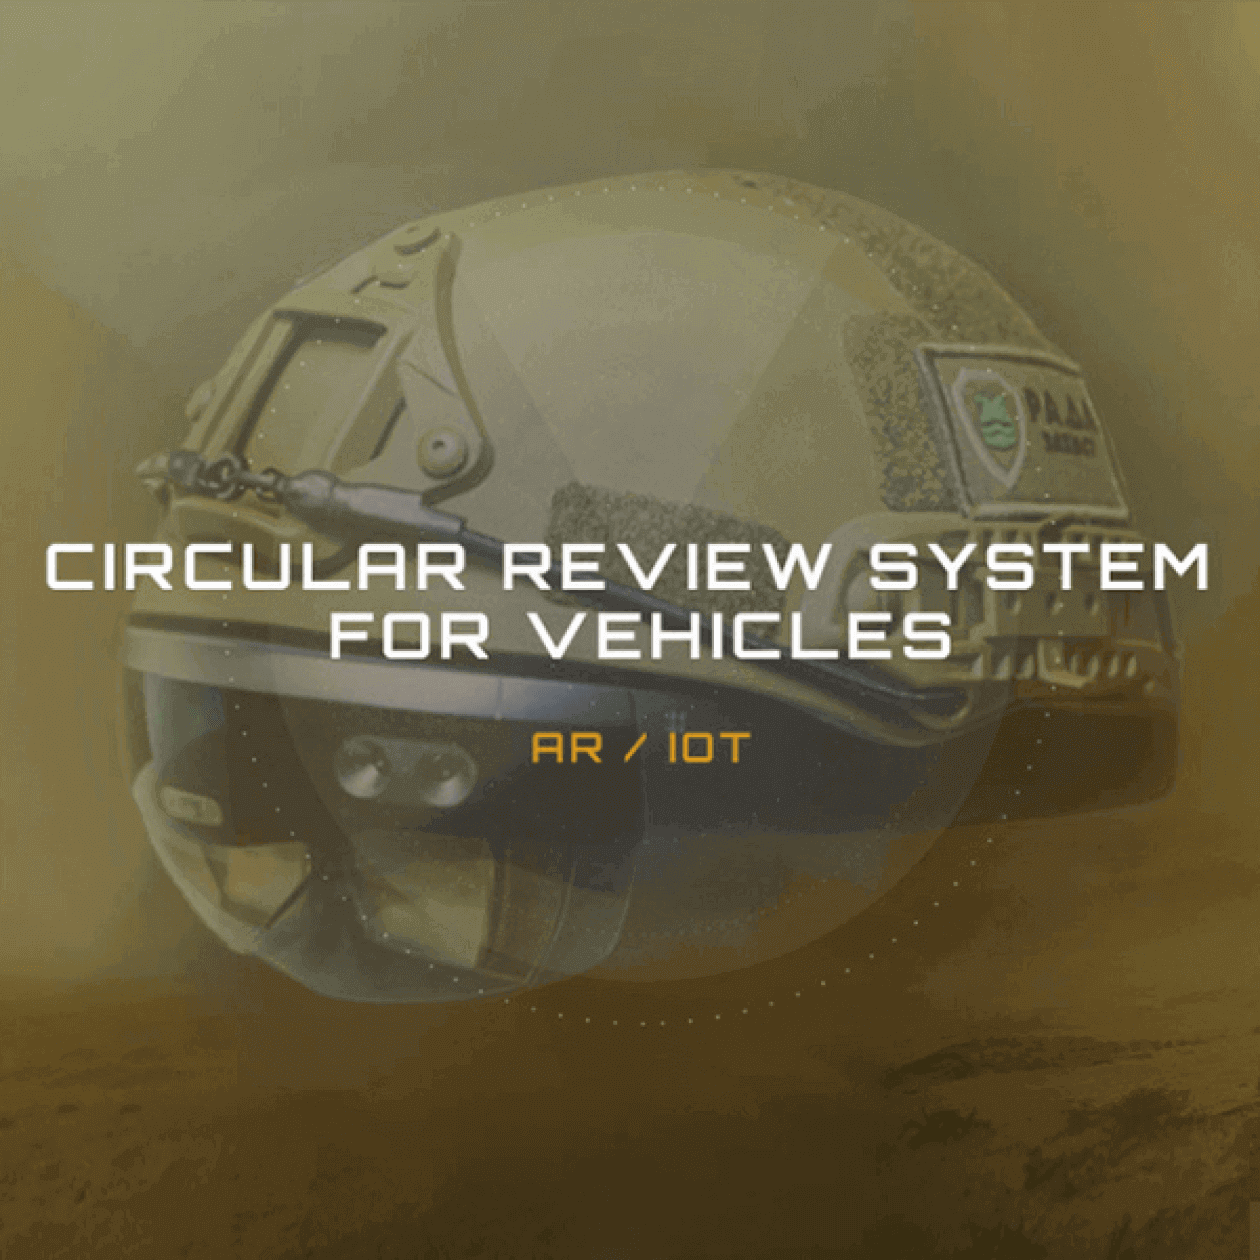 Circular review system vehicles